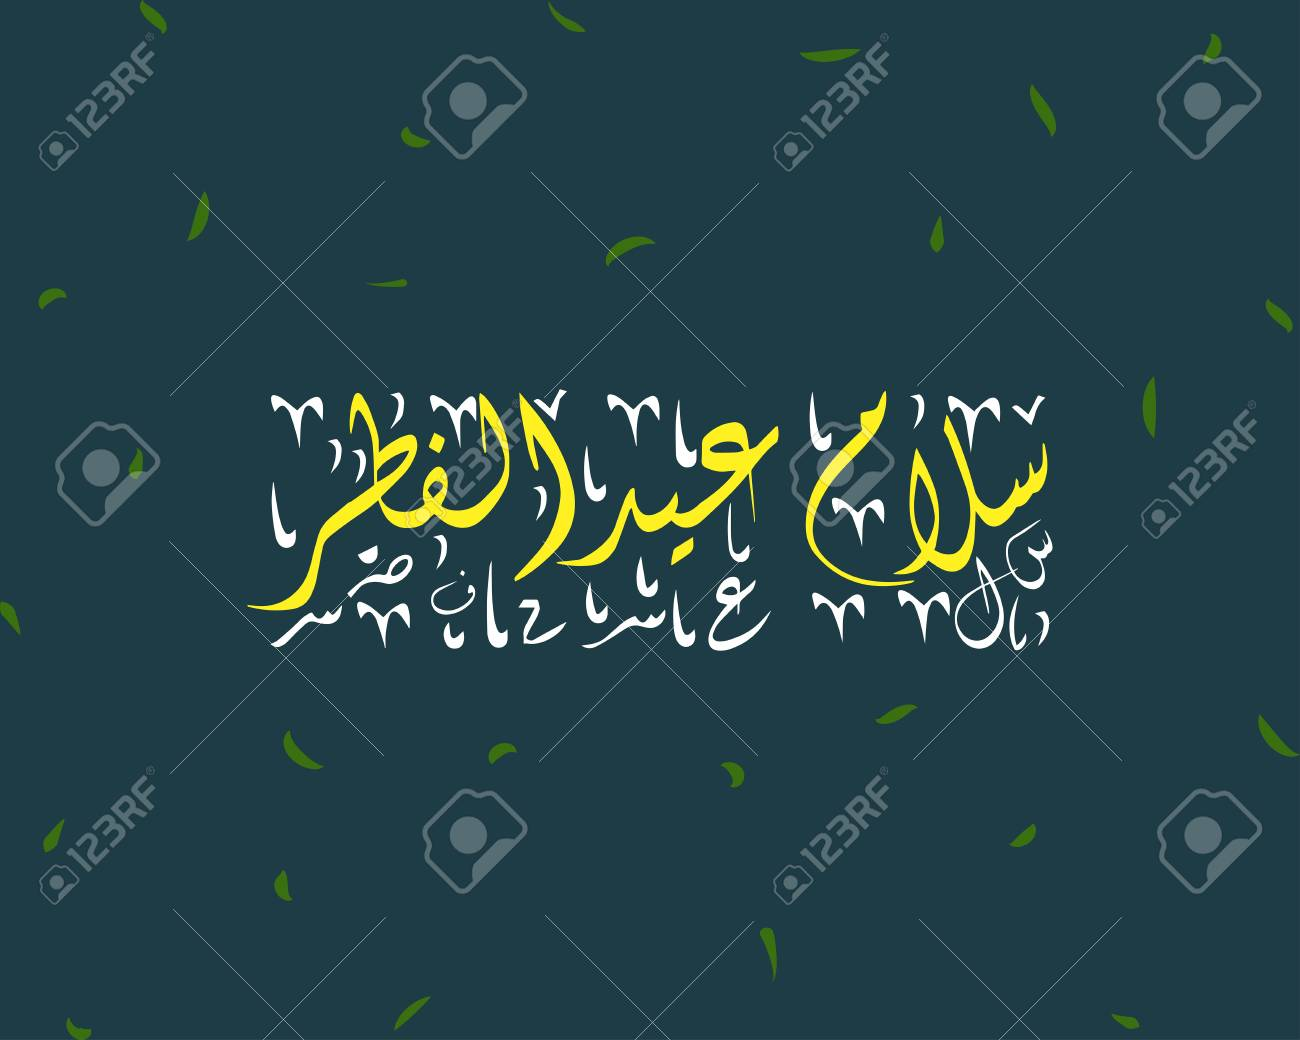 Eid mubarak or salam aidilfitri in arabic text greetings royalty eid mubarak or salam aidilfitri in arabic text greetings stock vector 100774148 m4hsunfo